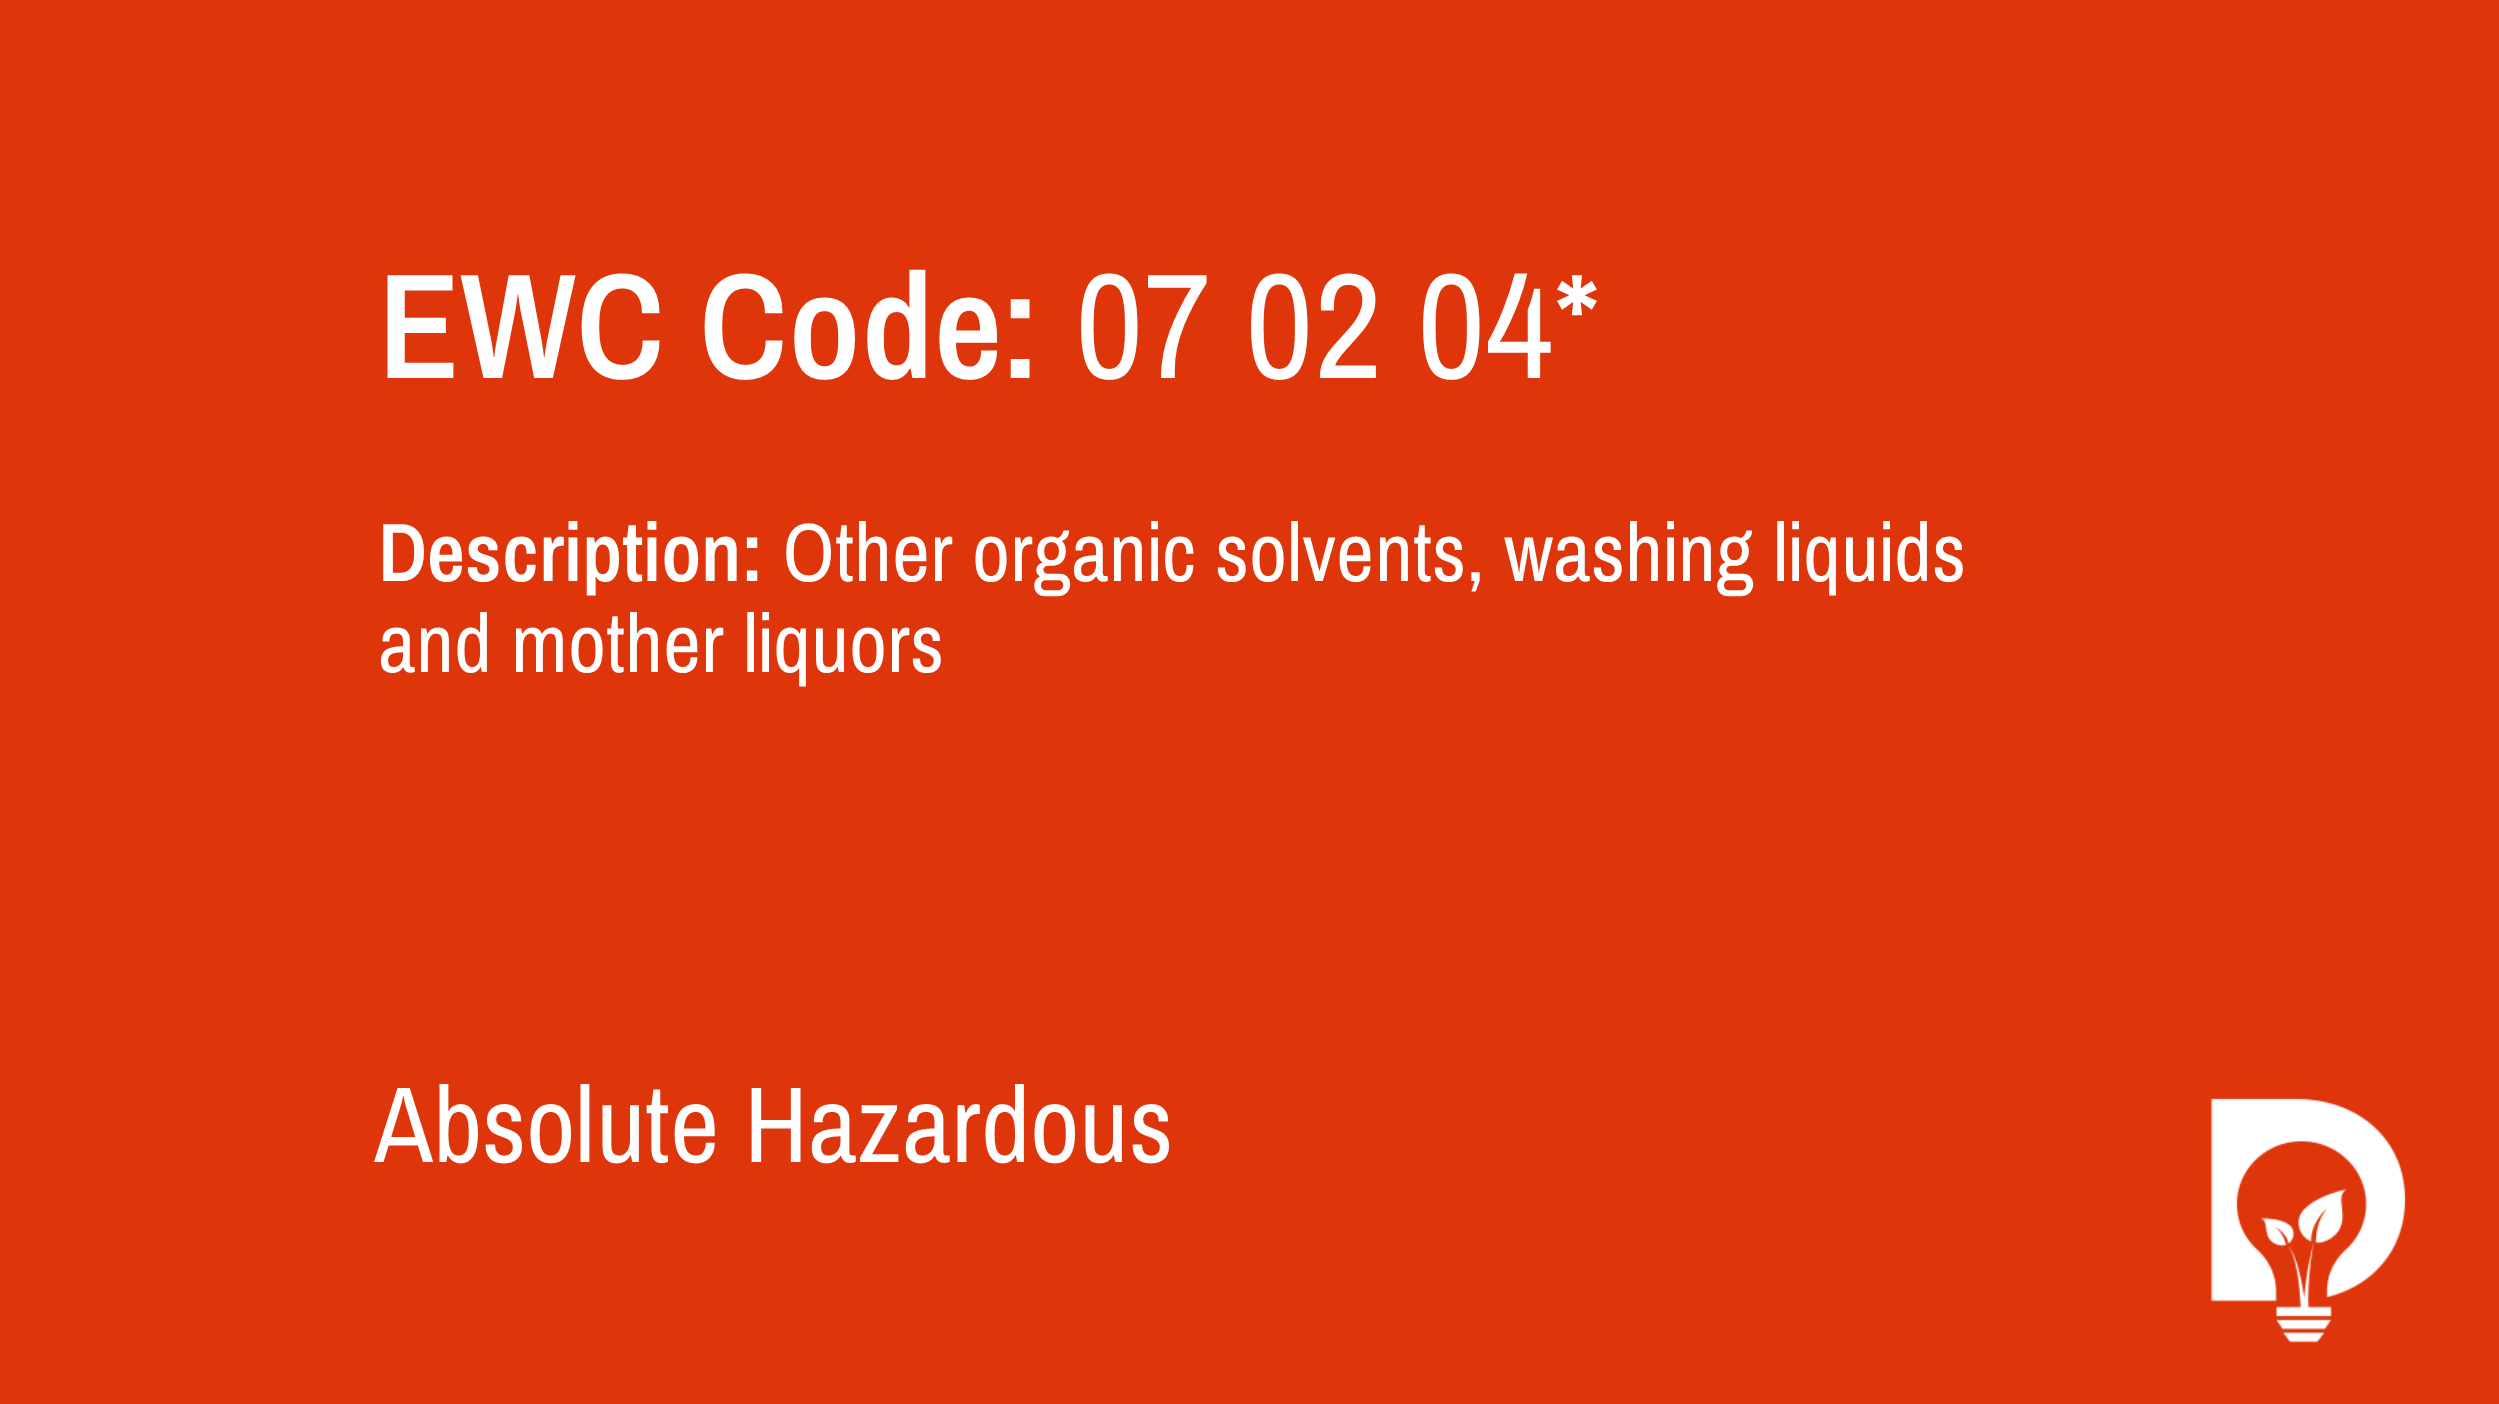 EWC Code: 07 02 04* - other organic solvents, washing liquids and mother liquors. Type: Absolute Hazardous. Image by Dsposal